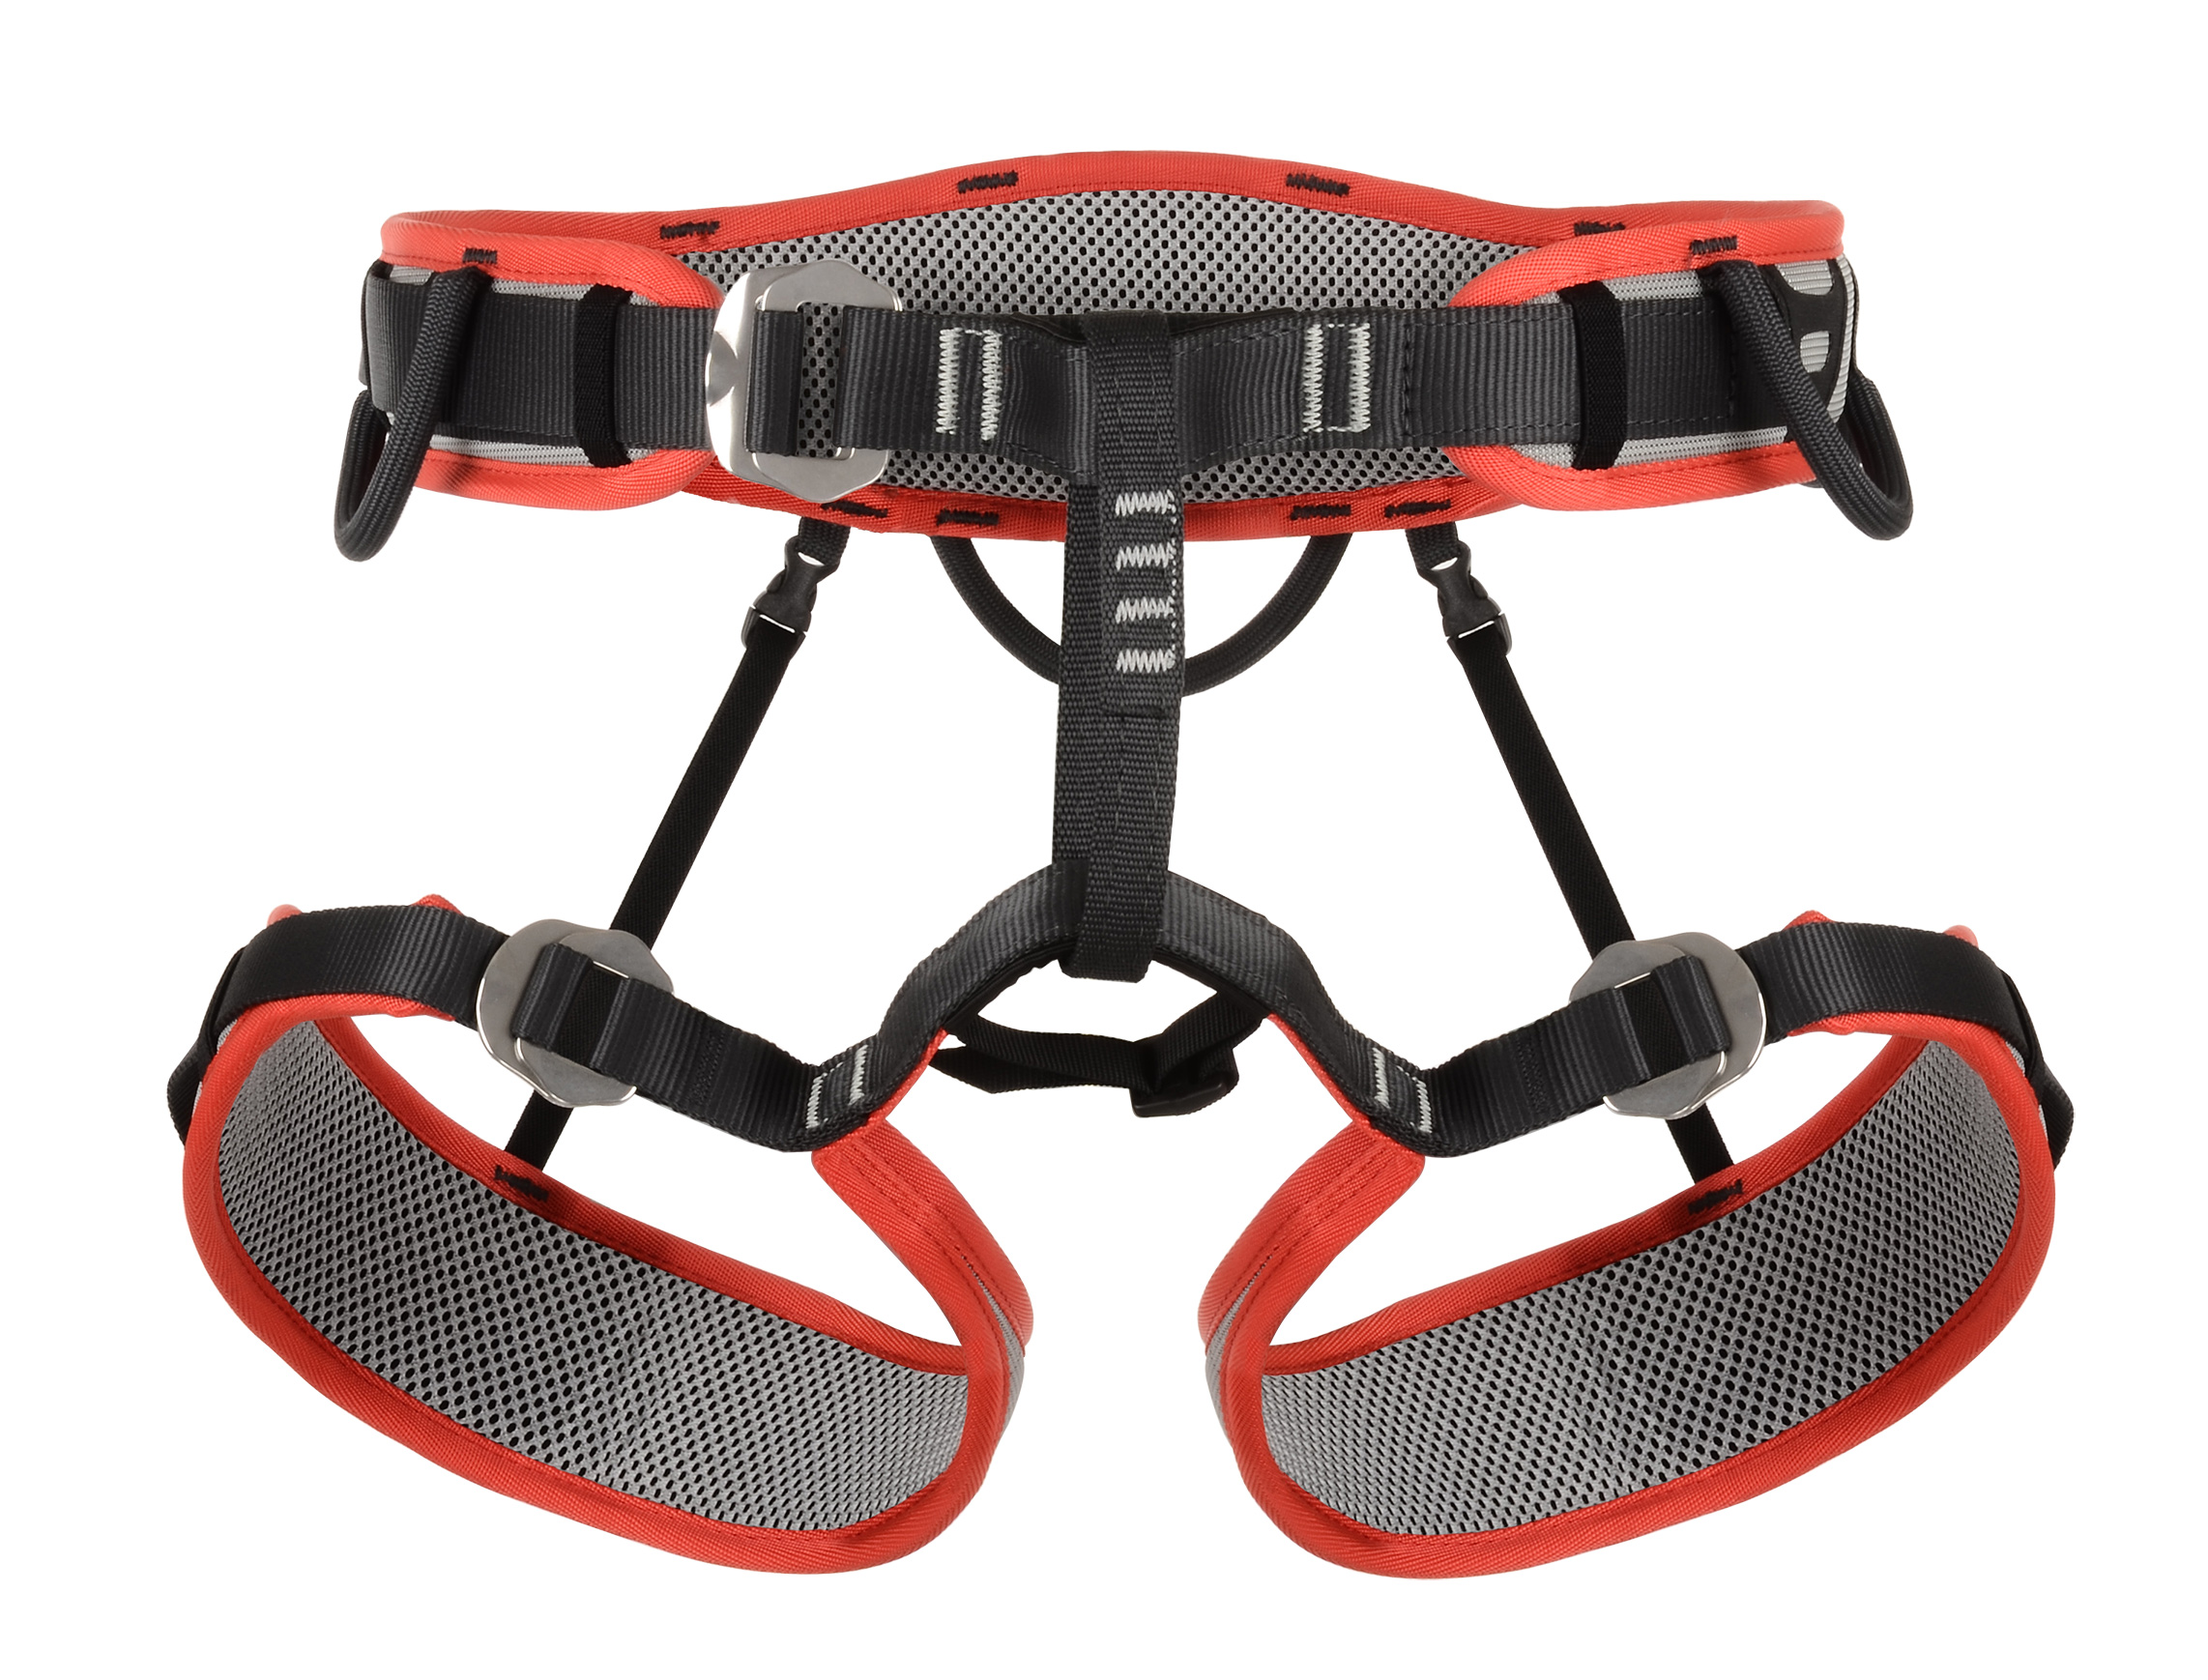 DMM Renegade 2 – Climbing Gear Review | Climbing Gear Reviews